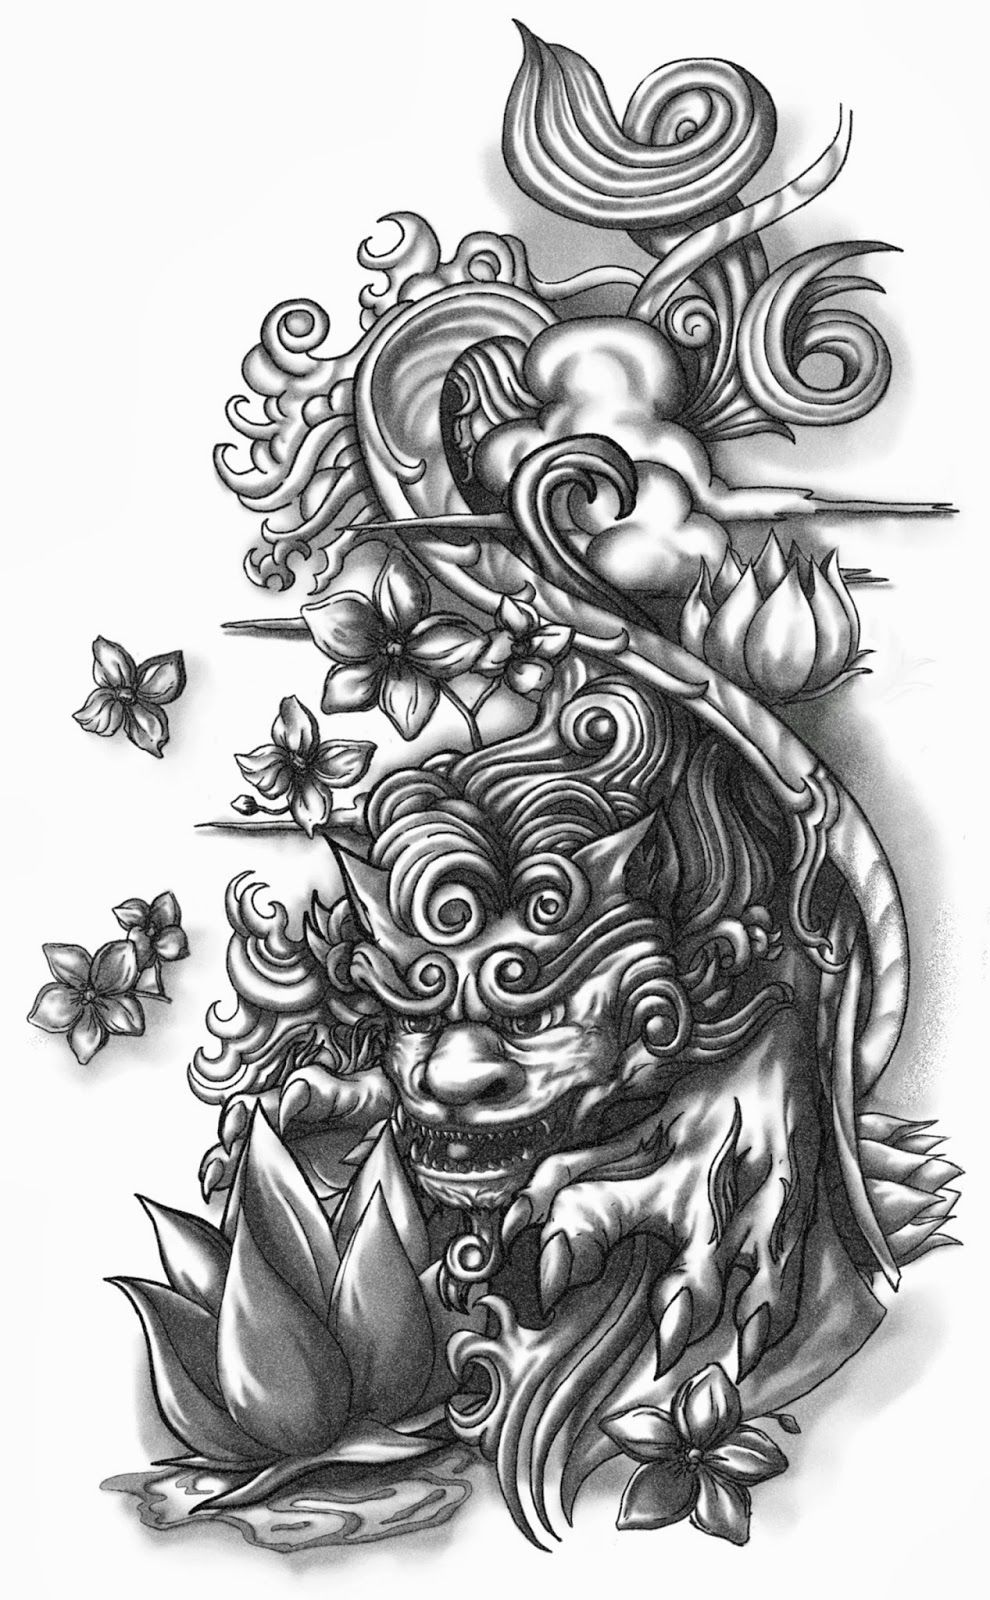 sleeve tattoo designs google search japanese tattoo pinterest sleeve tattoo designs. Black Bedroom Furniture Sets. Home Design Ideas